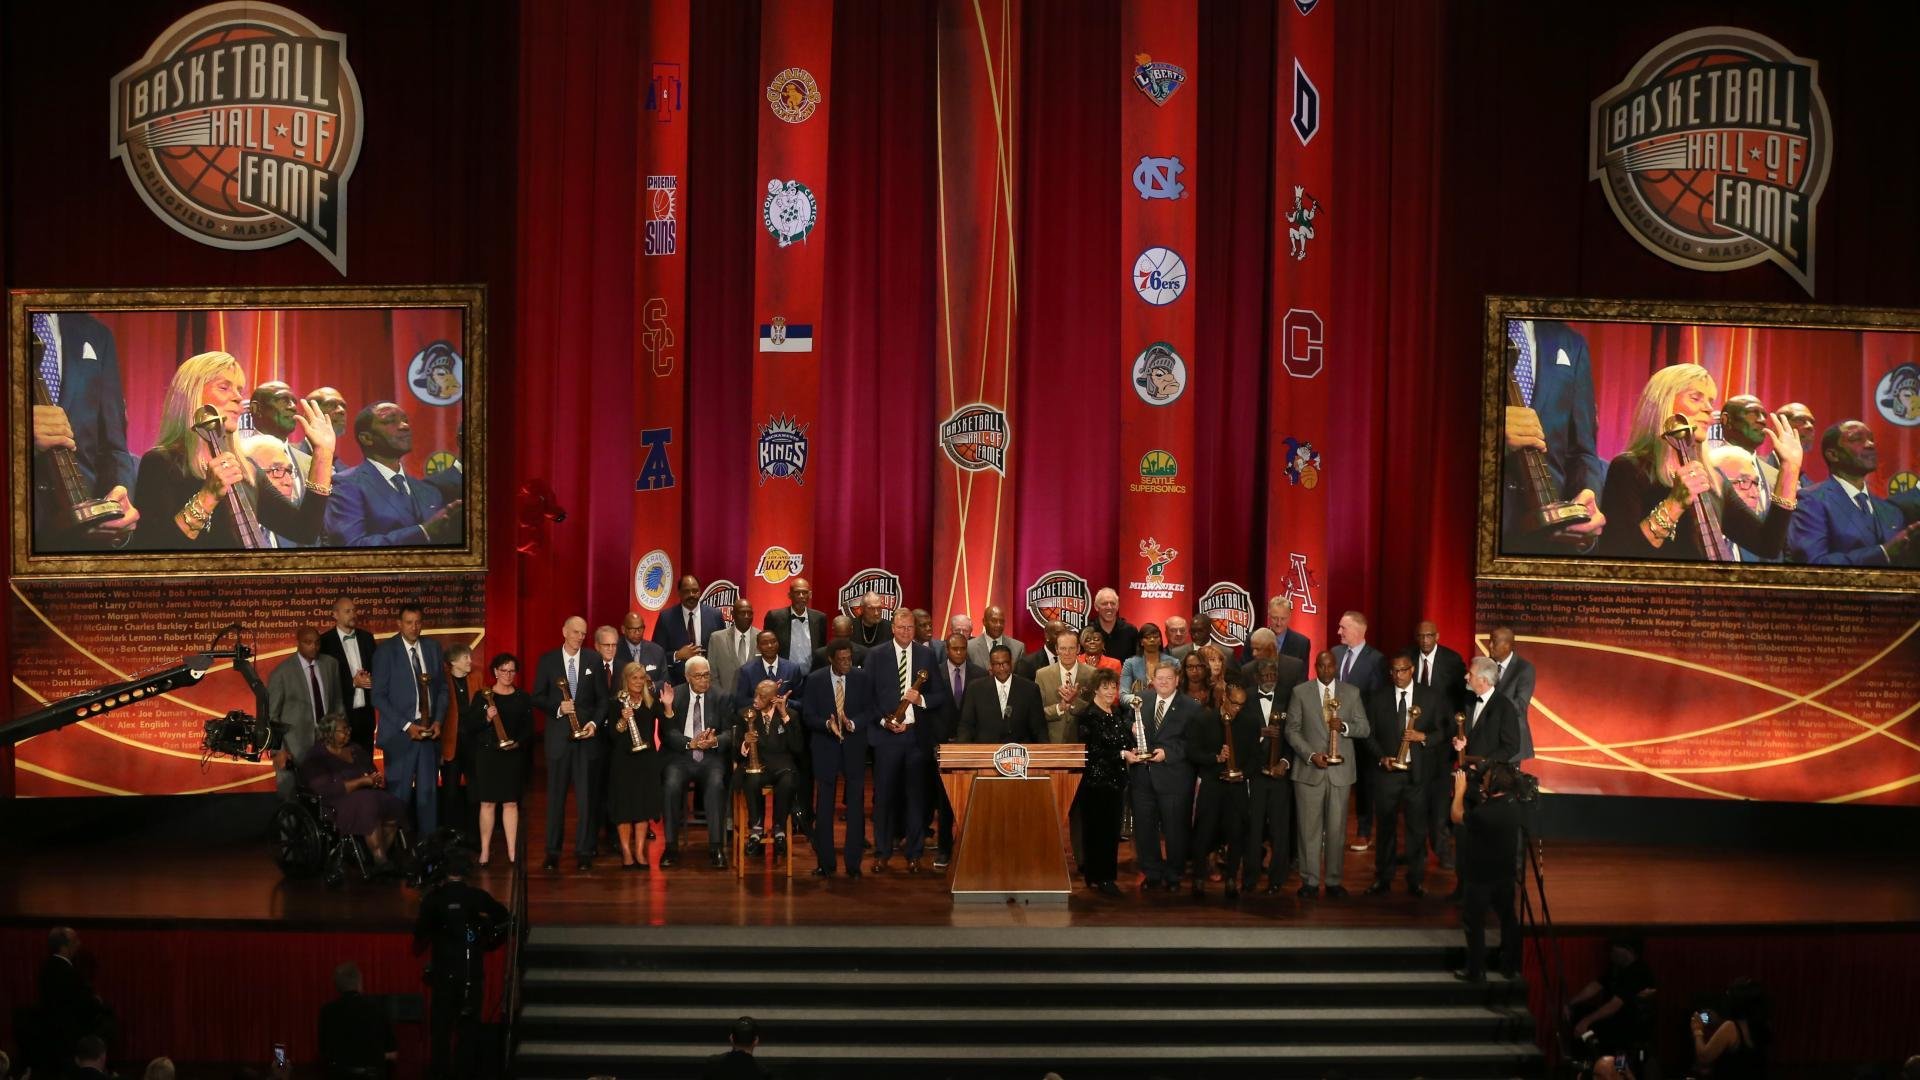 Class of 2019 officially enshrined into Basketball Hall of Fame